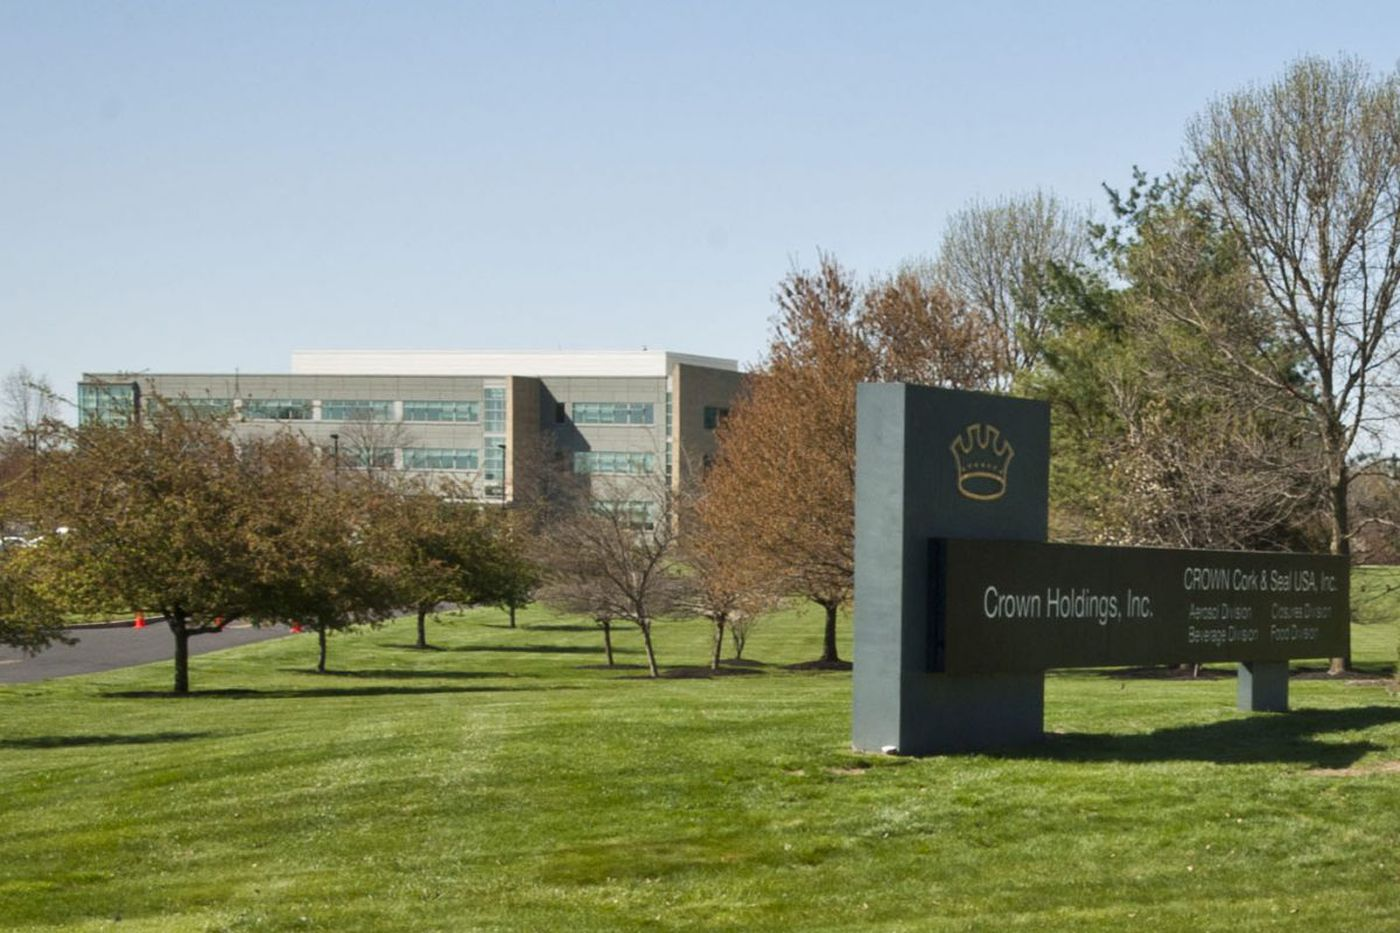 Crown Holdings sells NE Philly HQ for $9M, with plans to leave city